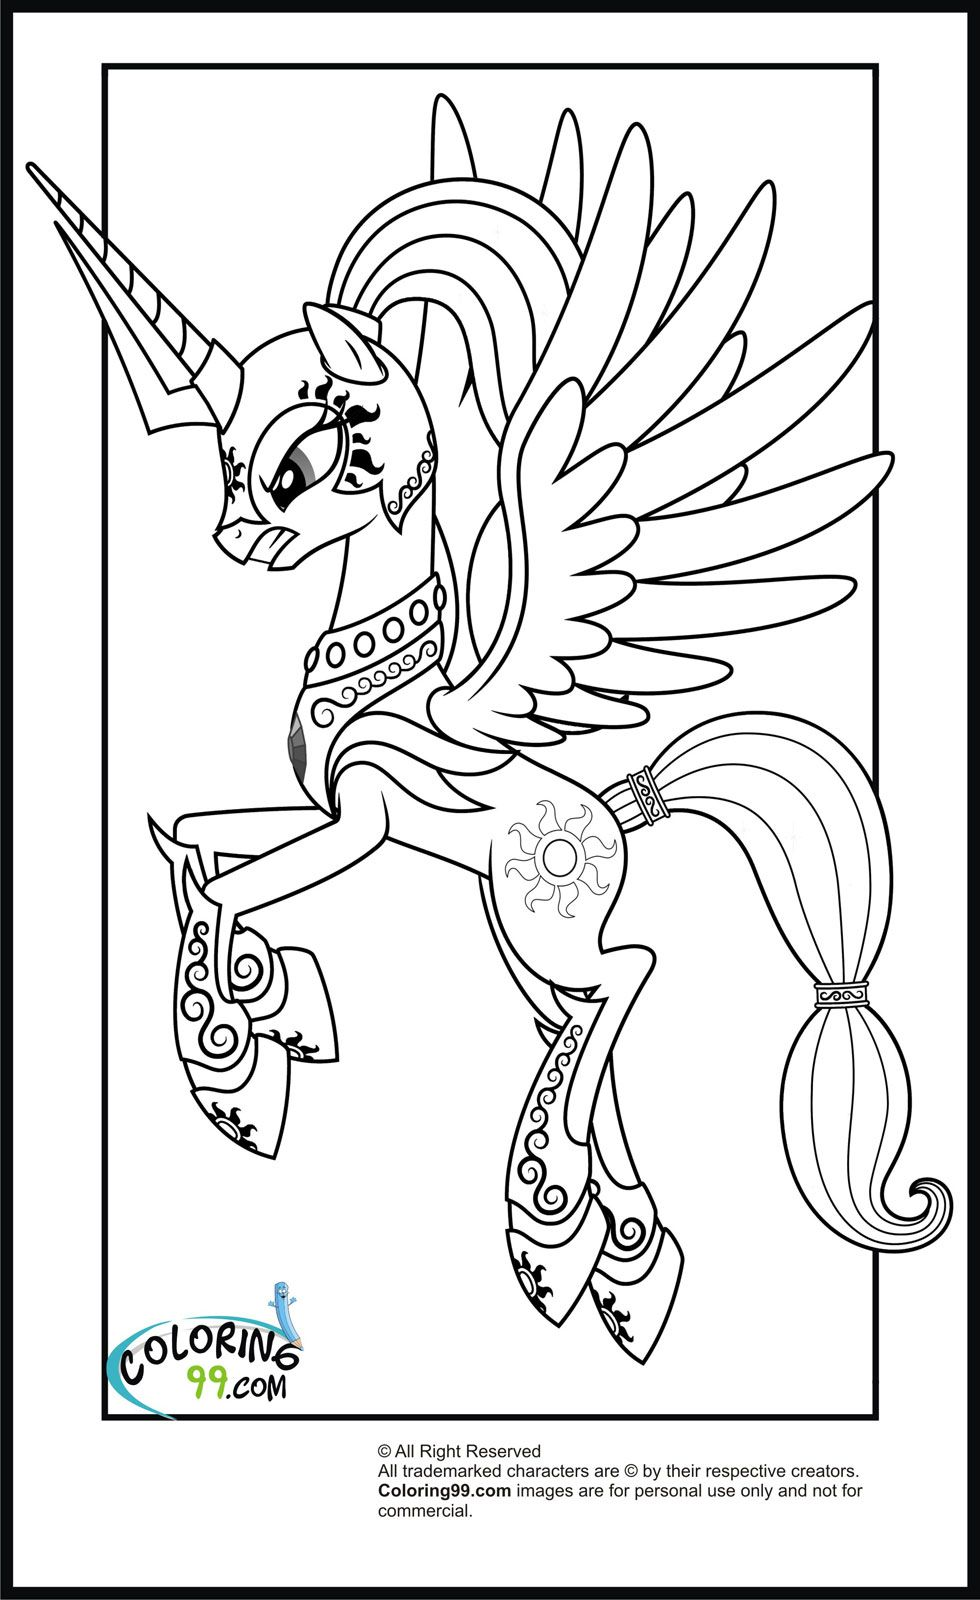 Ausmalbilder My Little Pony Equestria : My Little Pony Coloring Pages My Little Pony Daybreaker Coloring